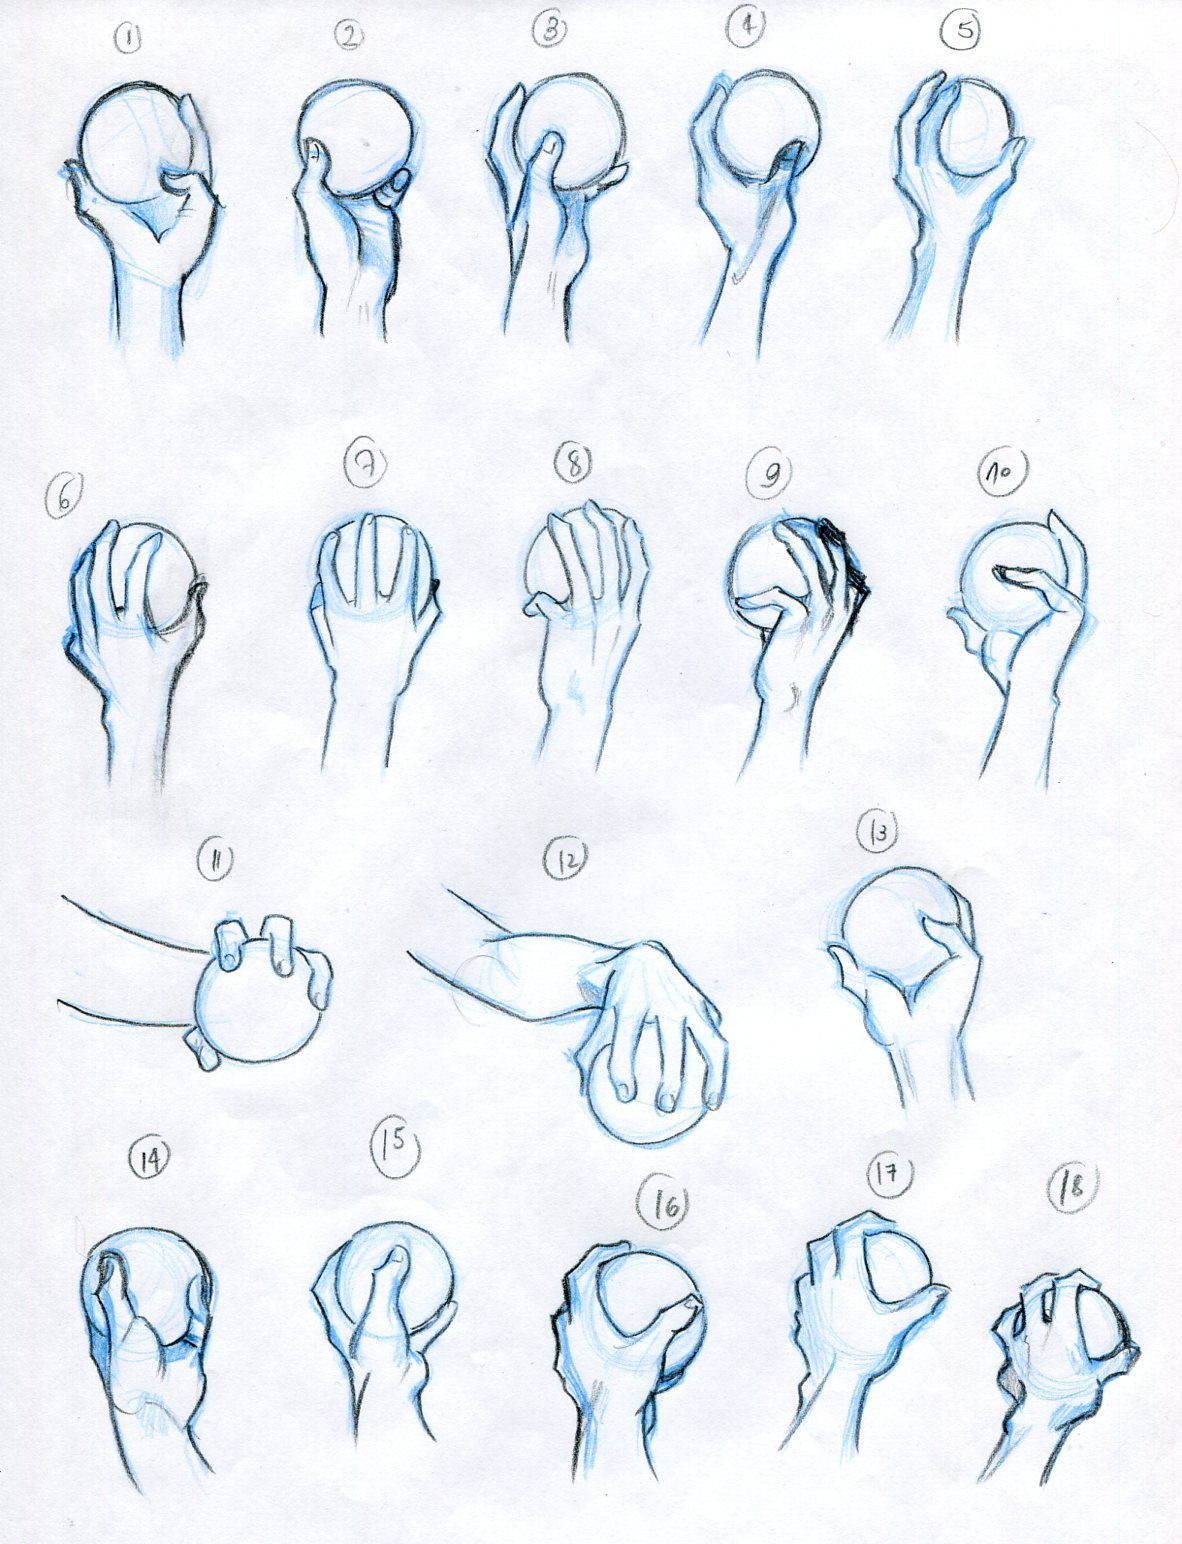 Anatomy - hands holding objects - the ball | Anatomy exercises ...